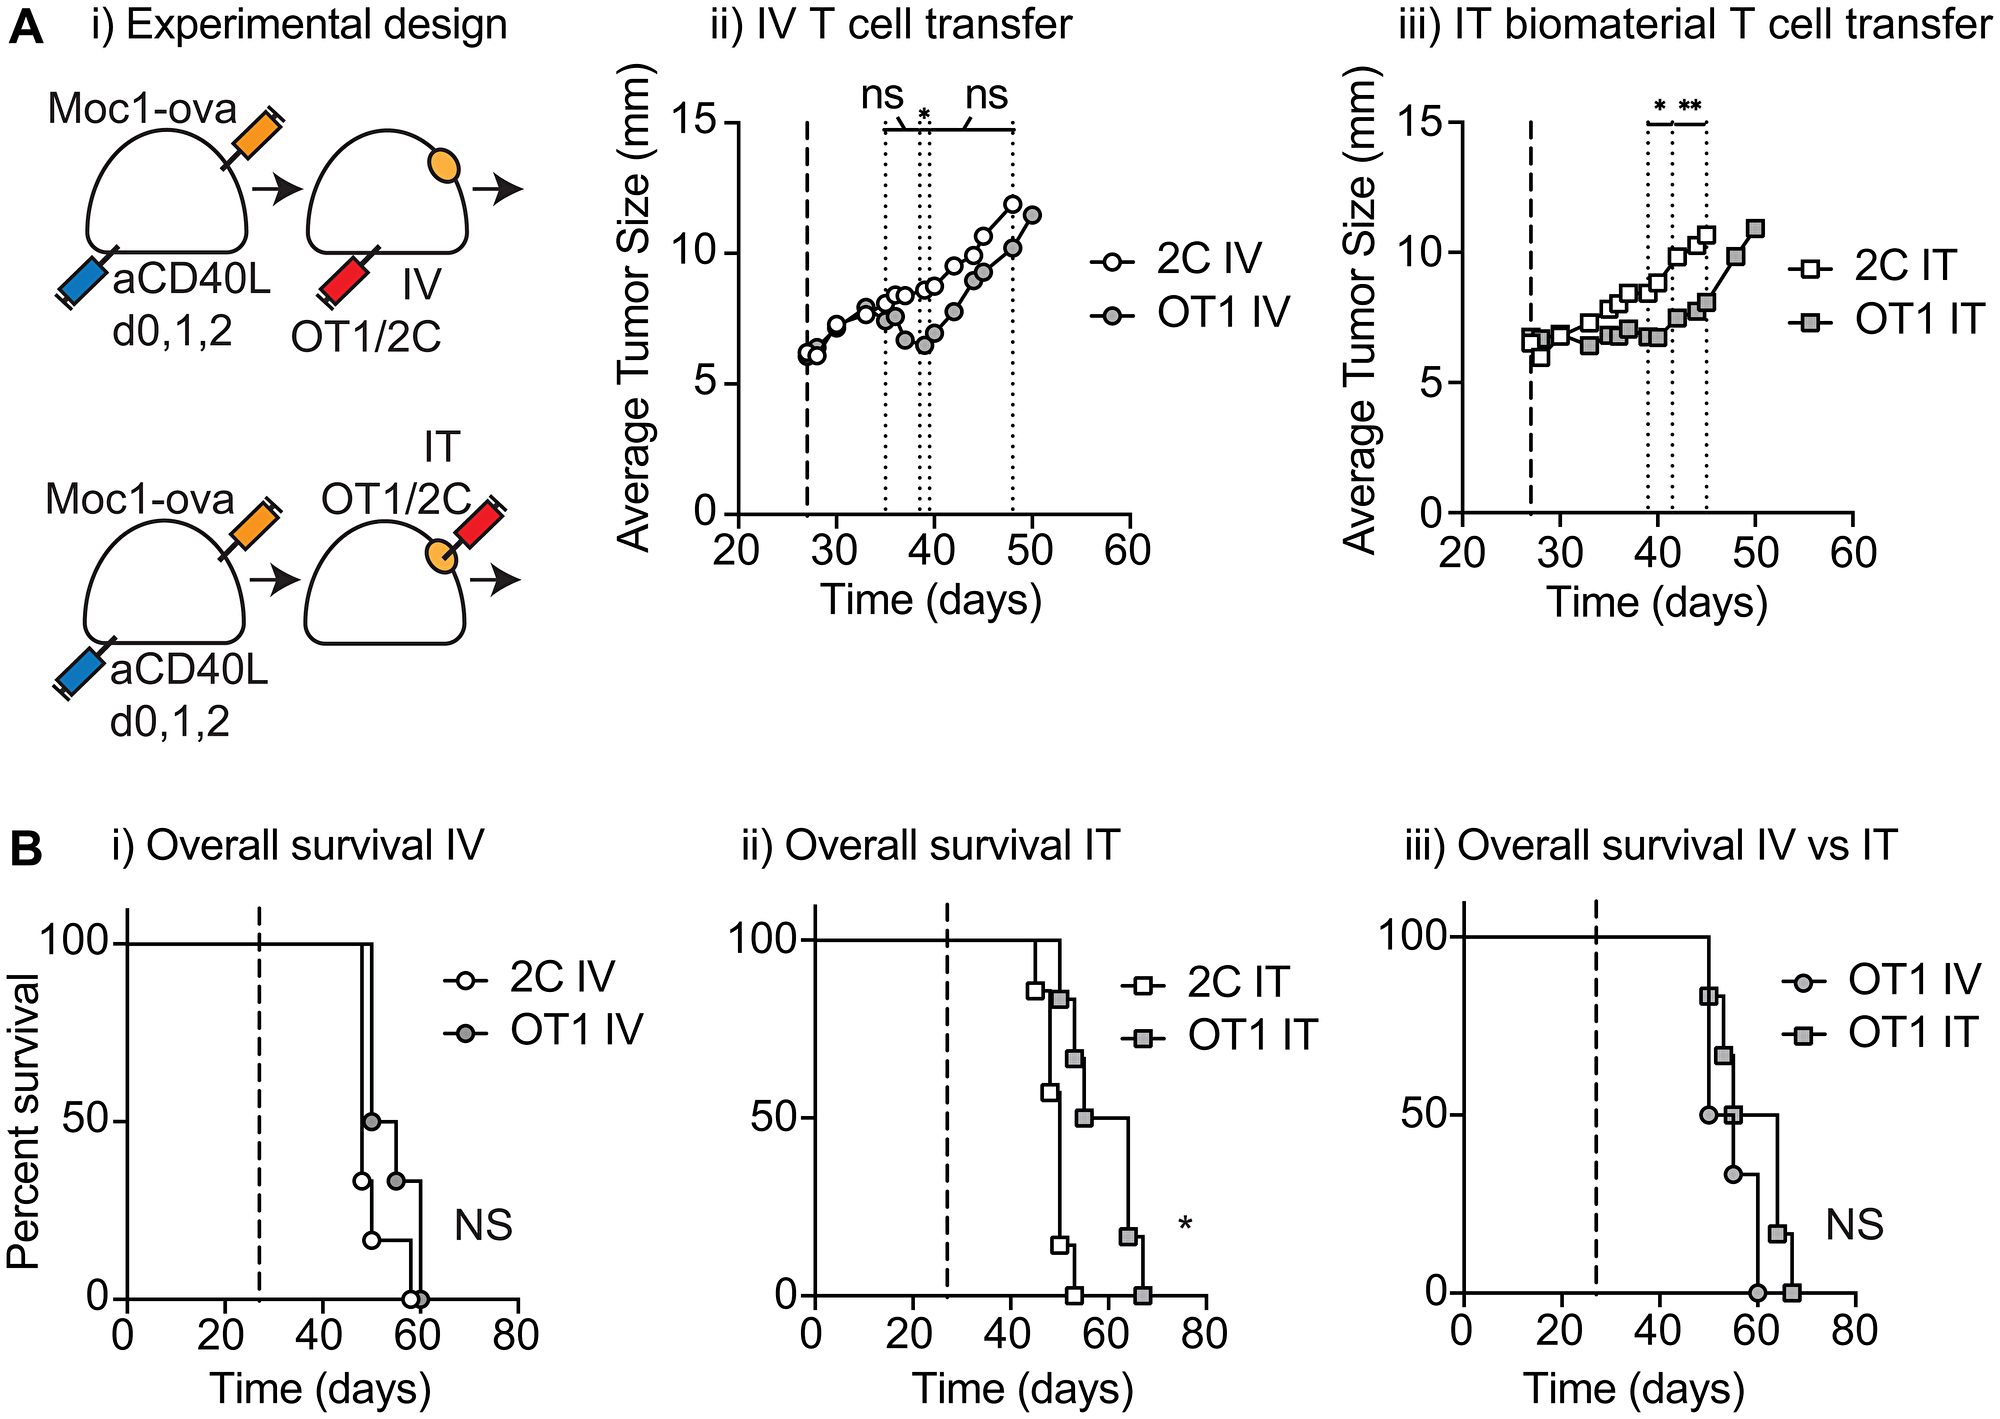 Tumor control following injection of antigen-specific T cell biomaterial.